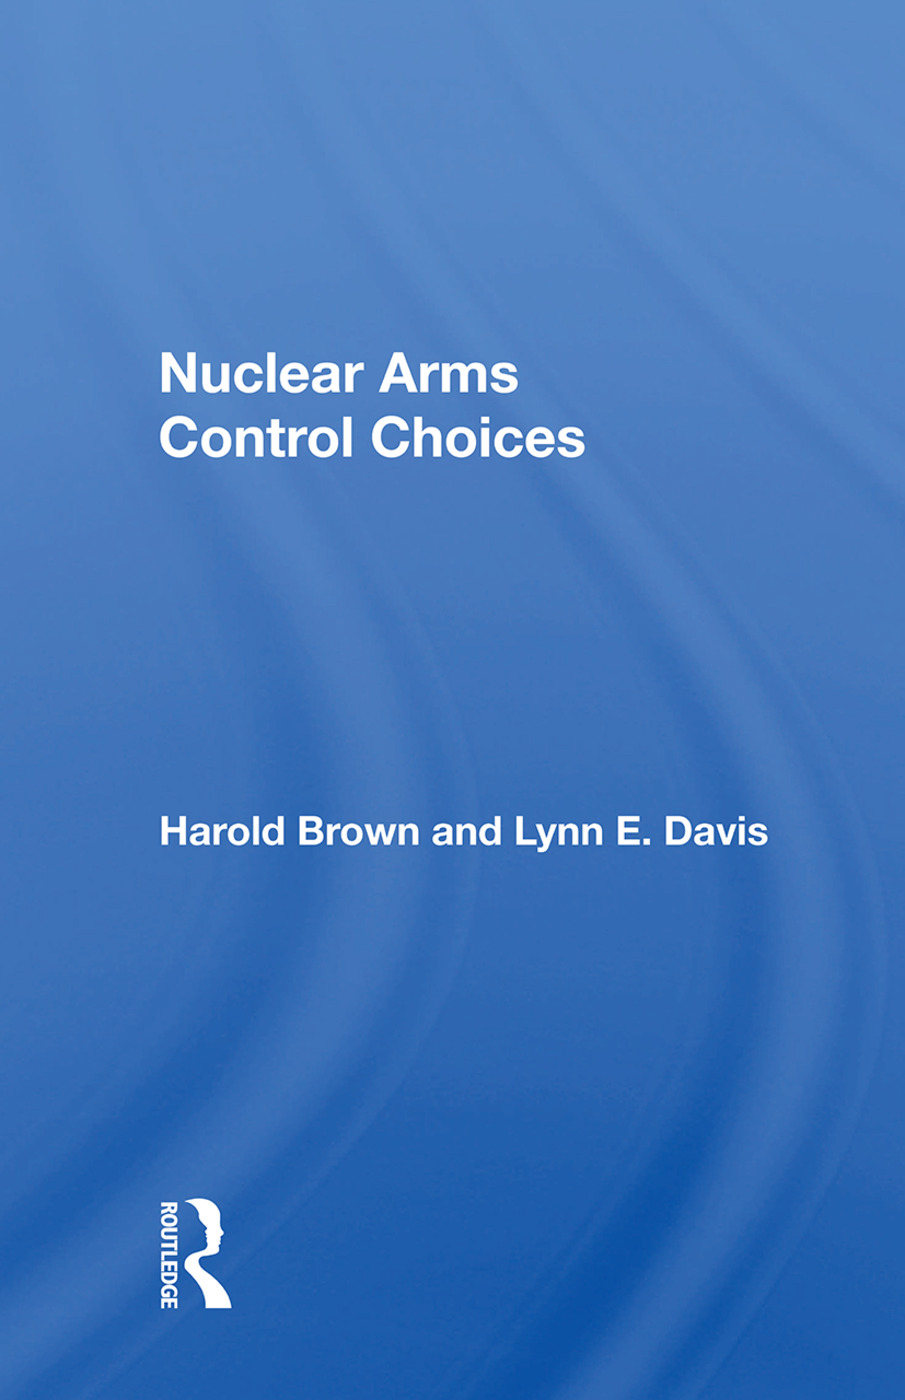 Nuclear Arms Control Choices book cover